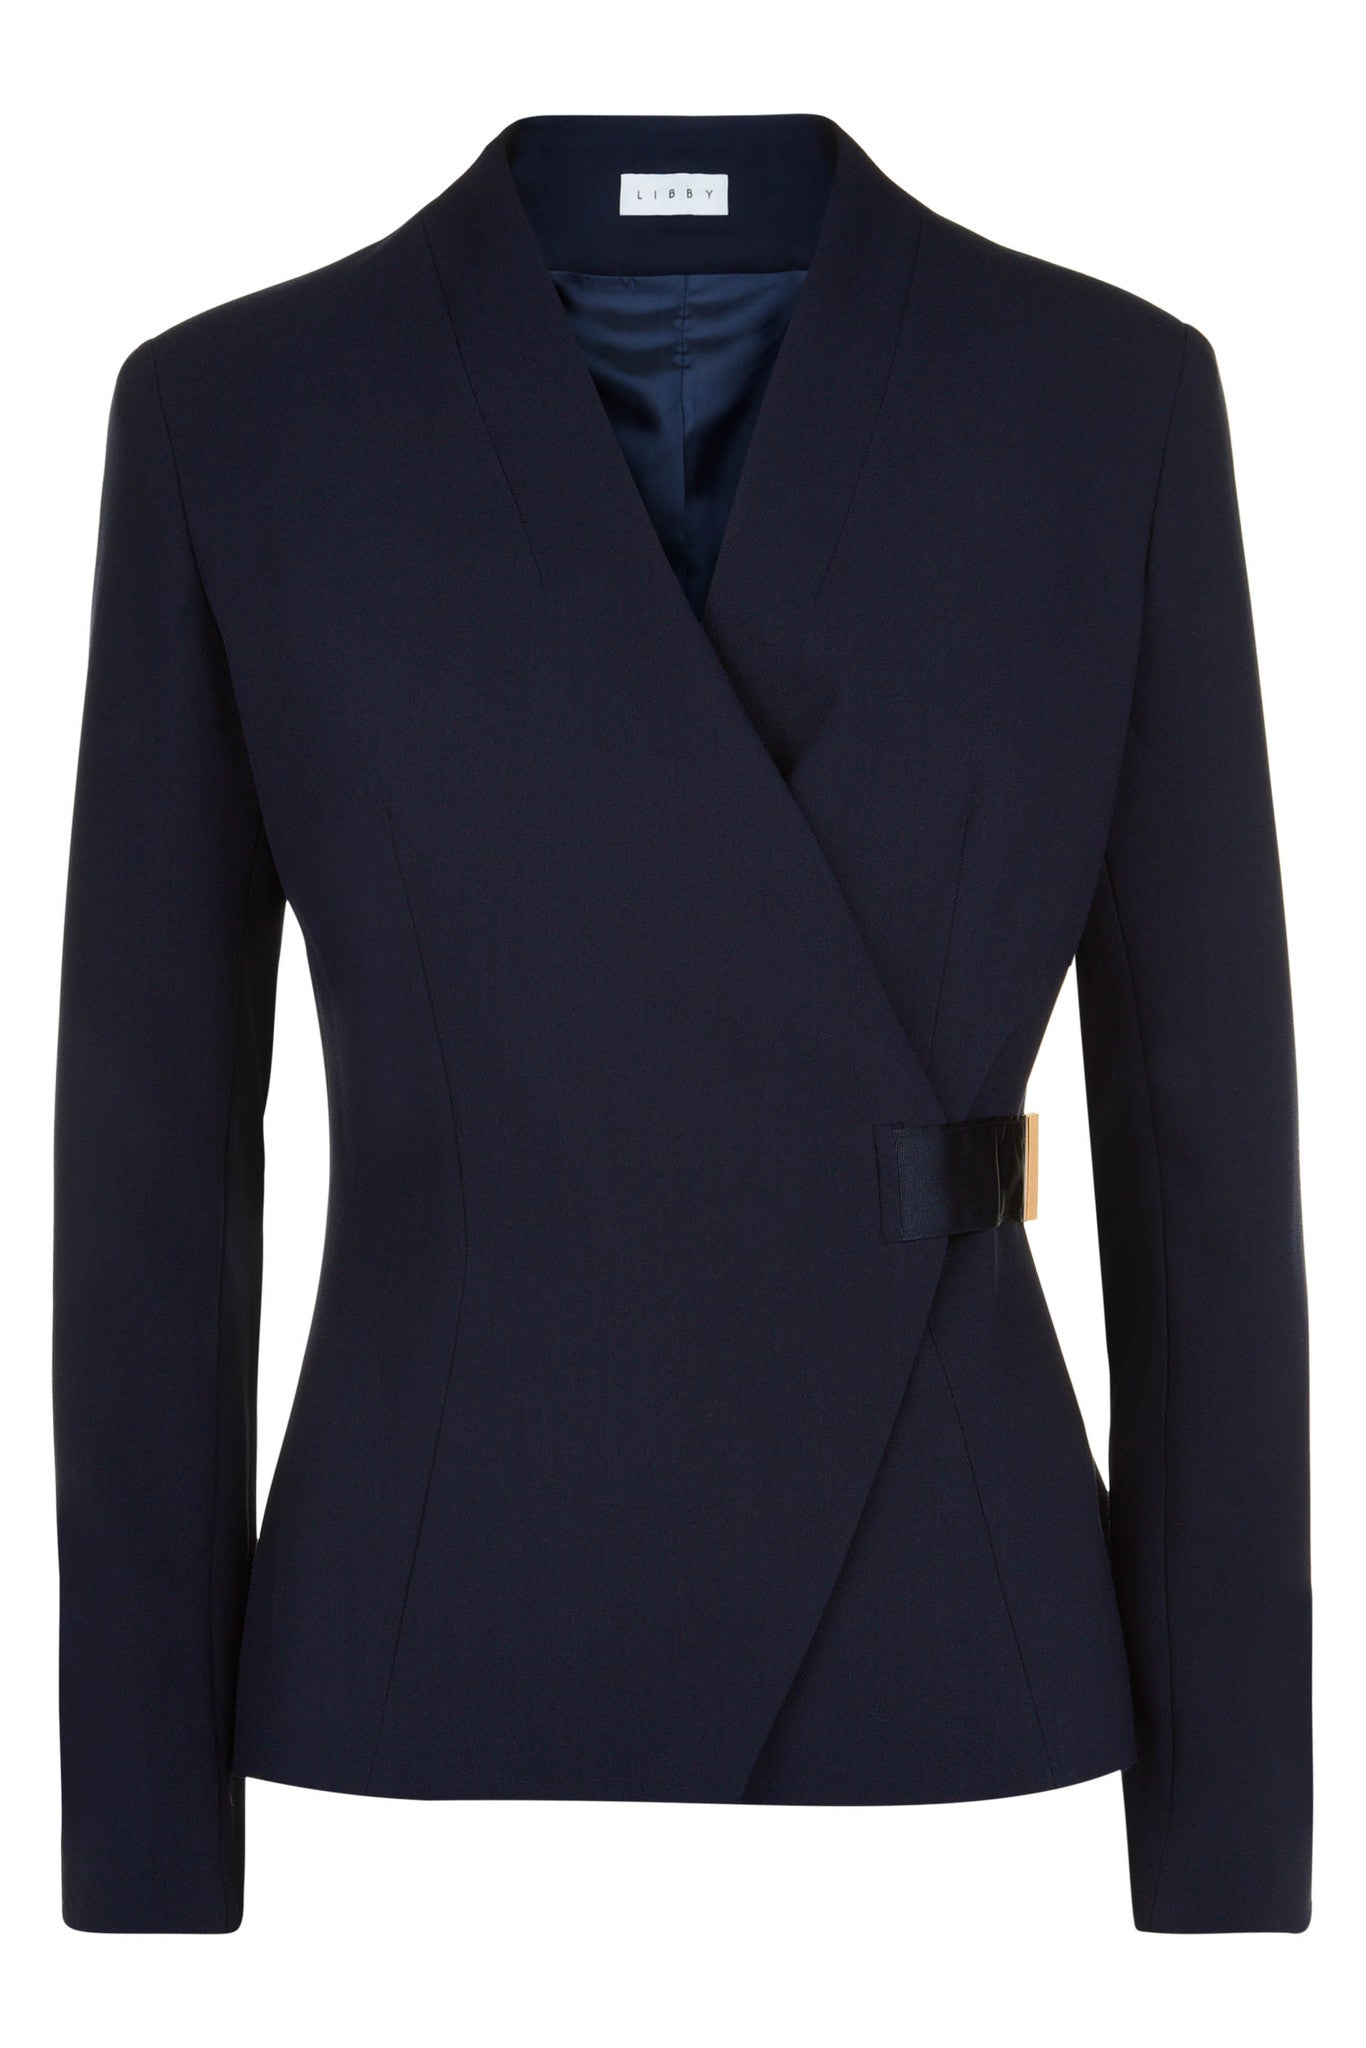 Winchester Navy Suiting Jacket